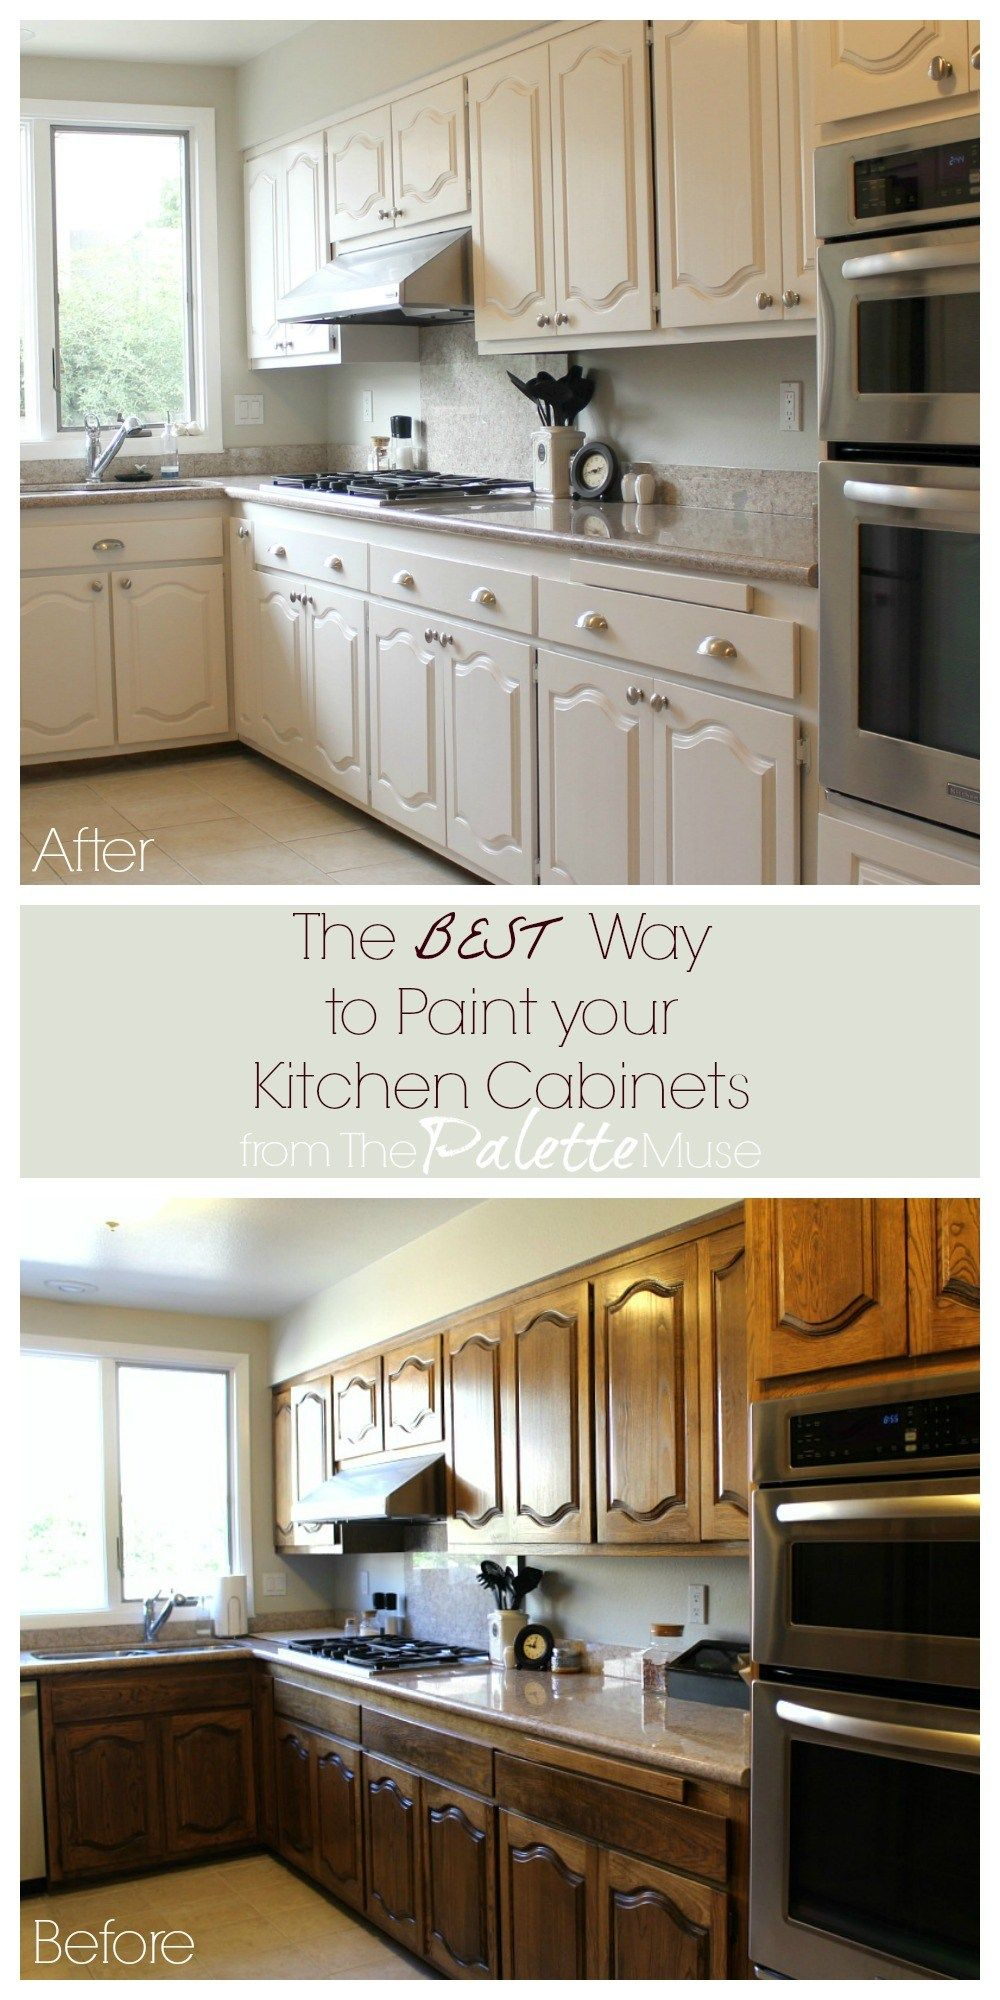 the best way to paint kitchen cabinets the best way to paint kitchen cabinets   satin kitchens and house  rh   pinterest com